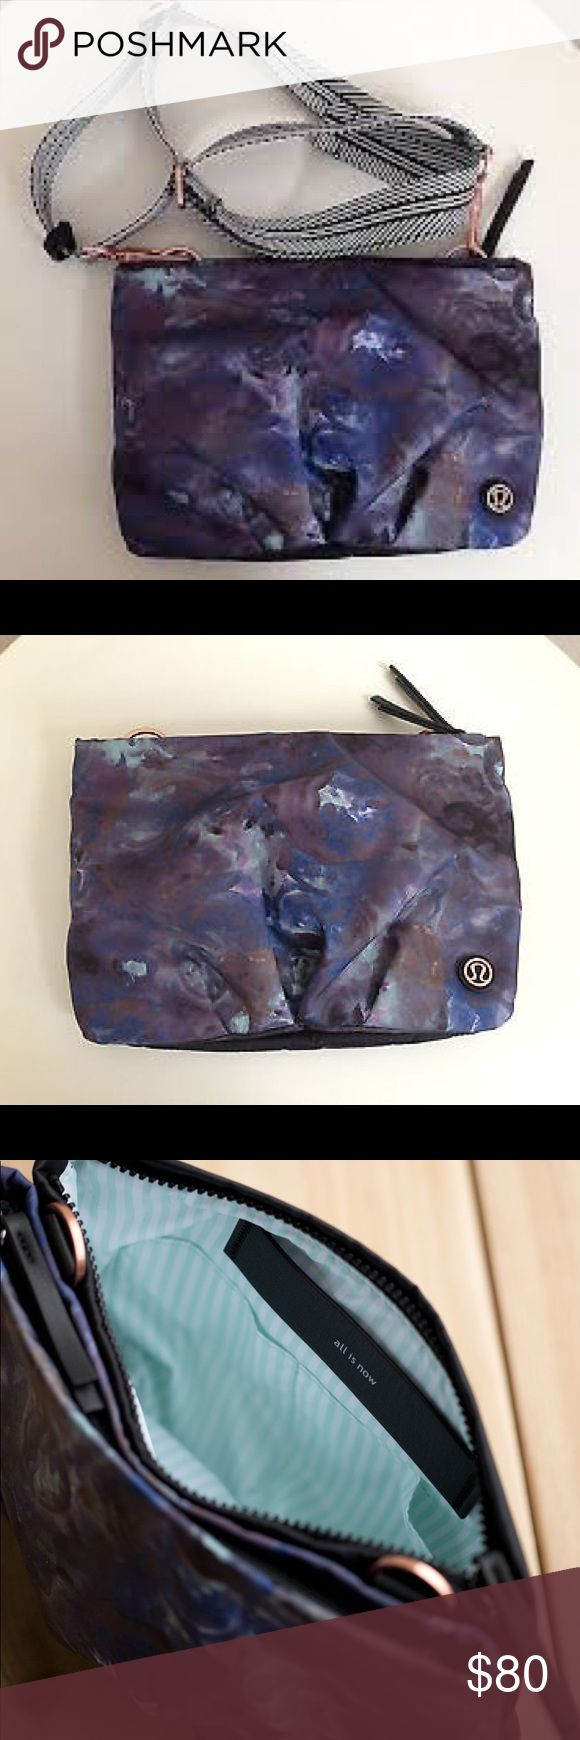 🦄✨Lululemon Hip To Be Free✨🦄 AMAZING lulu purse/ fanny pack. Was tested to carry up to 20 pounds. Moody Mirage is a very rare print, and it is gorgeous. The bag is NWOT. Purple blue galaxy flowery trippy design. Deep gray and green hints. Should be noted that my bag is very cheap for what it's worth!! Baby blue insides, cute sayings. Multiple pockets. Perfect for traveling.festival large flowers gym bag rose gold copper hardware zippers, adjustable strap that disconnects so versatile cross…